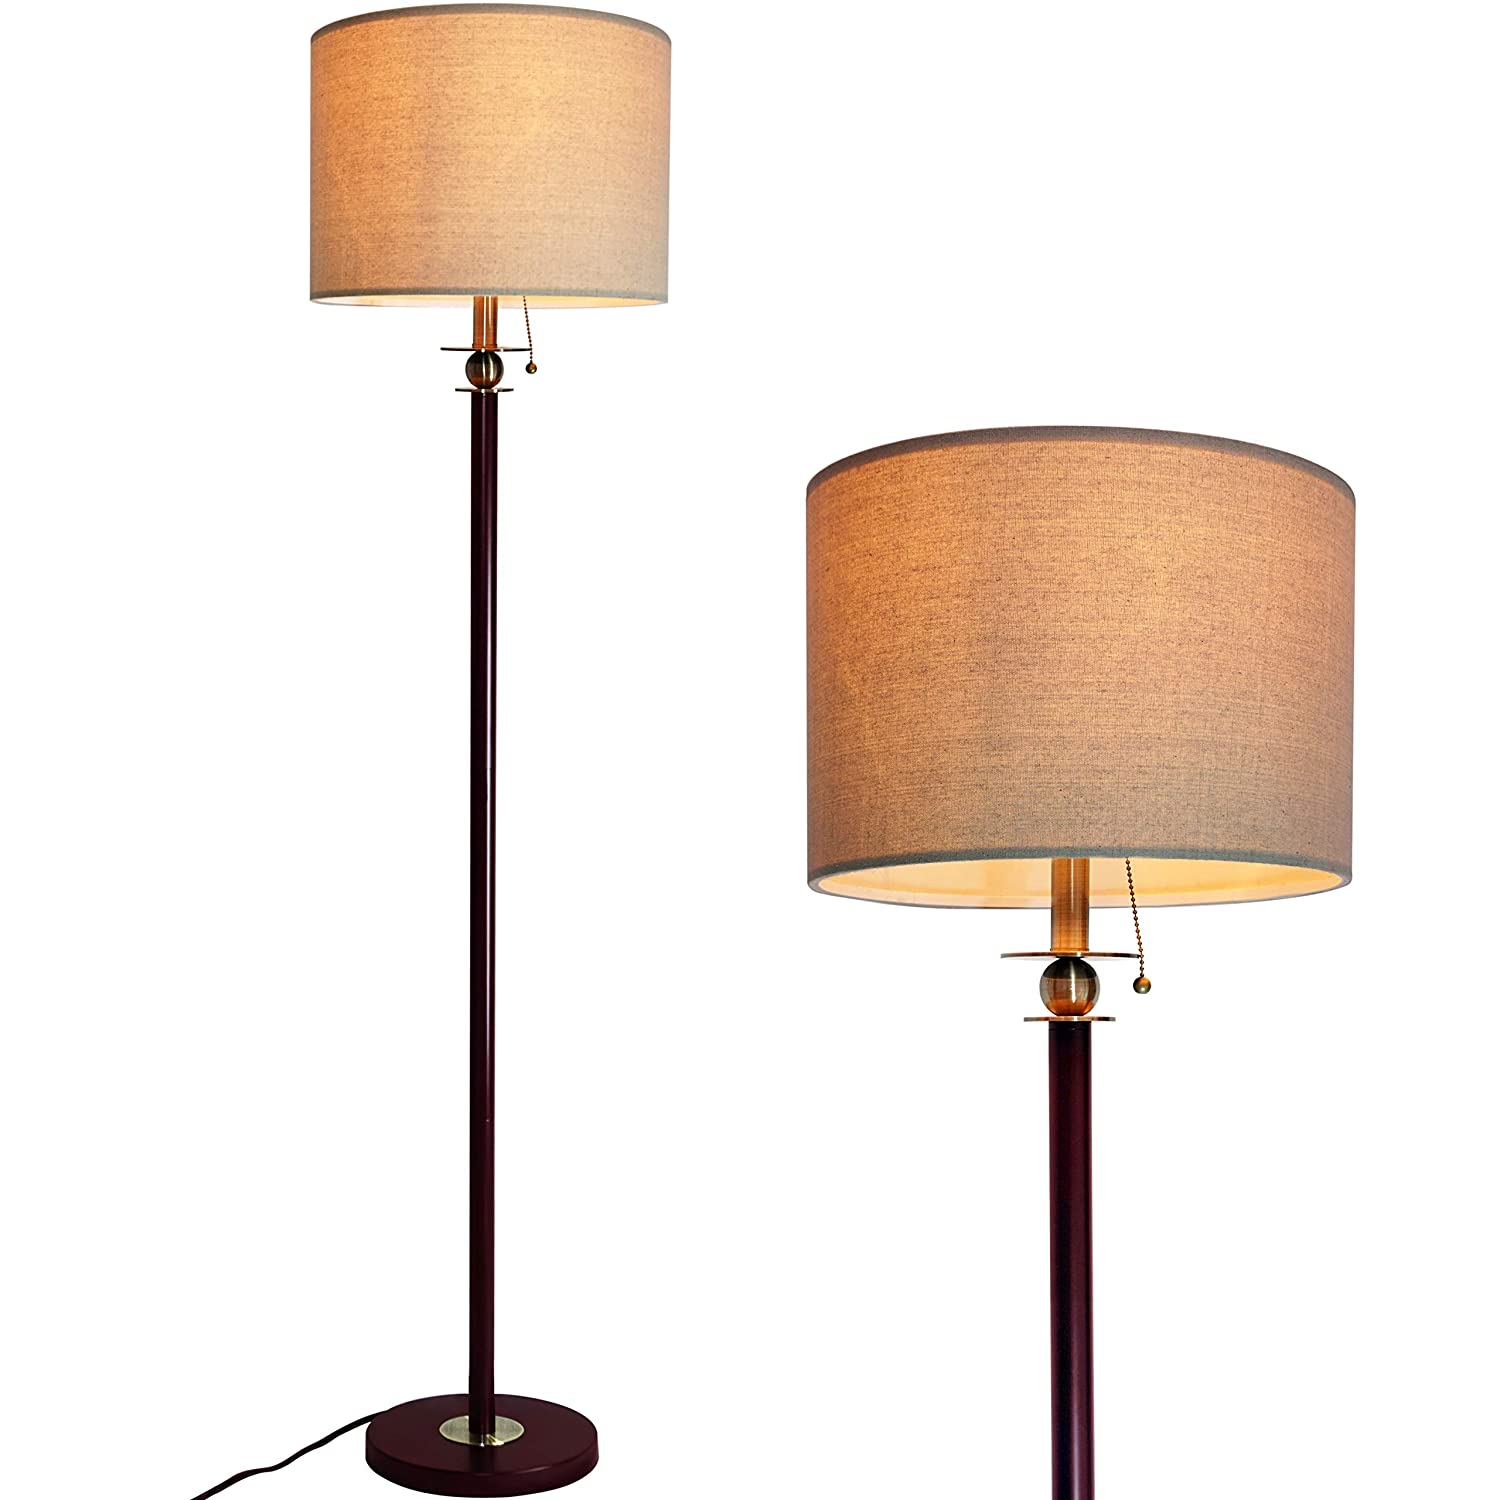 Floor Lamp for Living Room, Modern Standing Lamp with Hanging Drum Shade, Thickened Tall Pole Lamp for Office with Pull Chain and Floor Switch (Bronze)